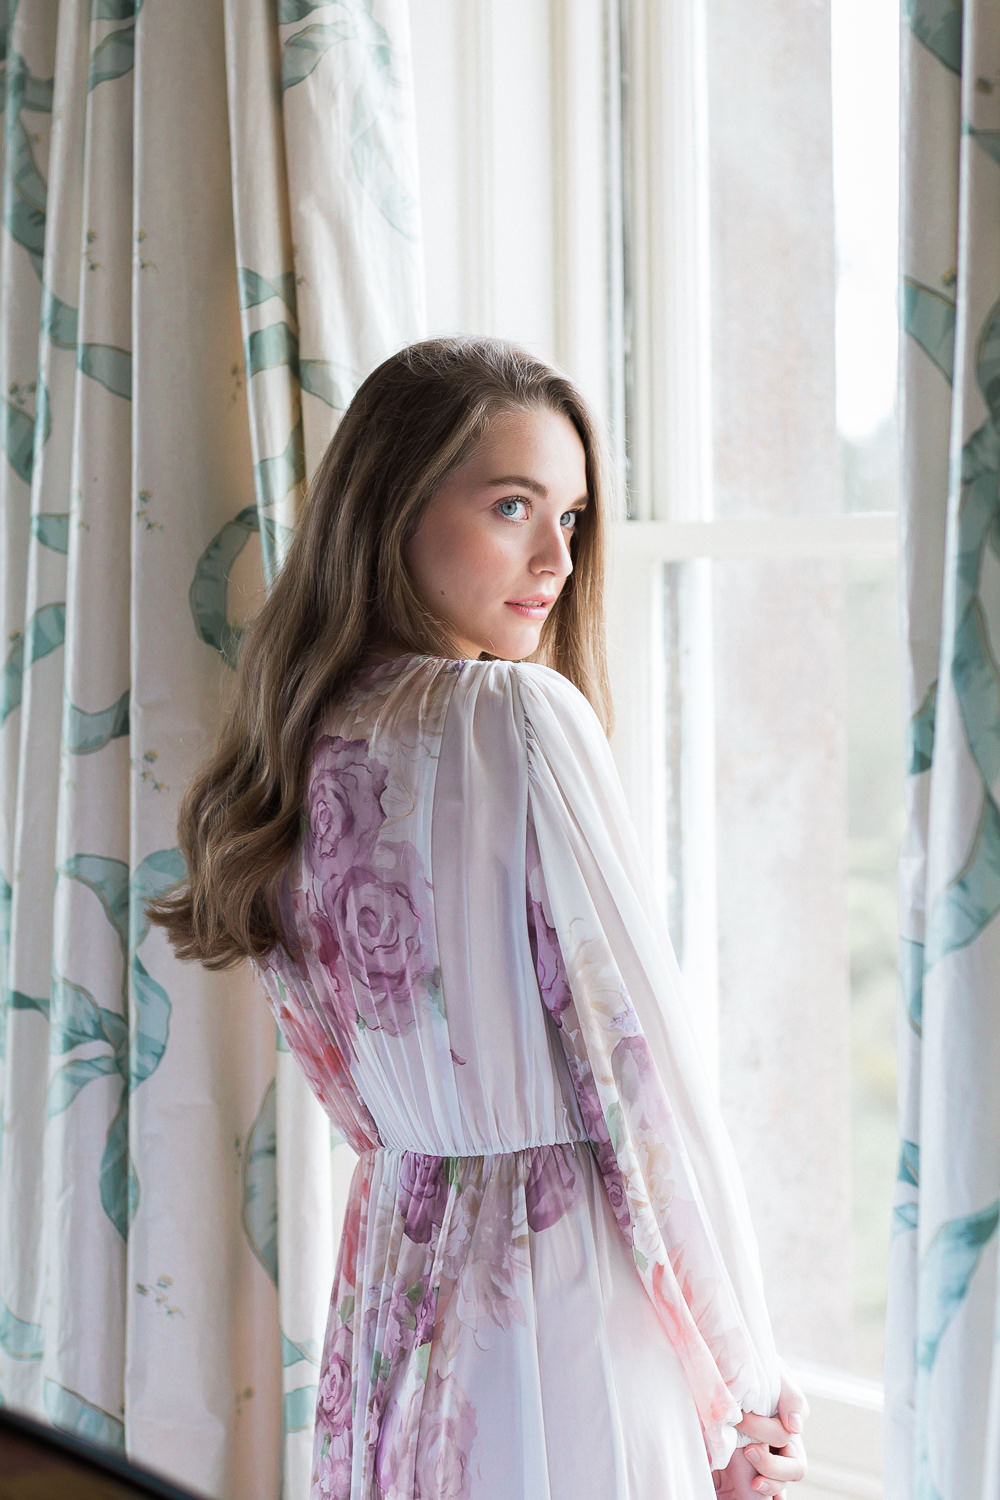 Modern Wabi Sabi Ballet Dance Inspired Fine Art Editorial Somerley House Morning Bridal Prep Floral Robe Domenica Domenica Natural Make-up | Romantic Soft Wedding Ideas Siobhan H Photography